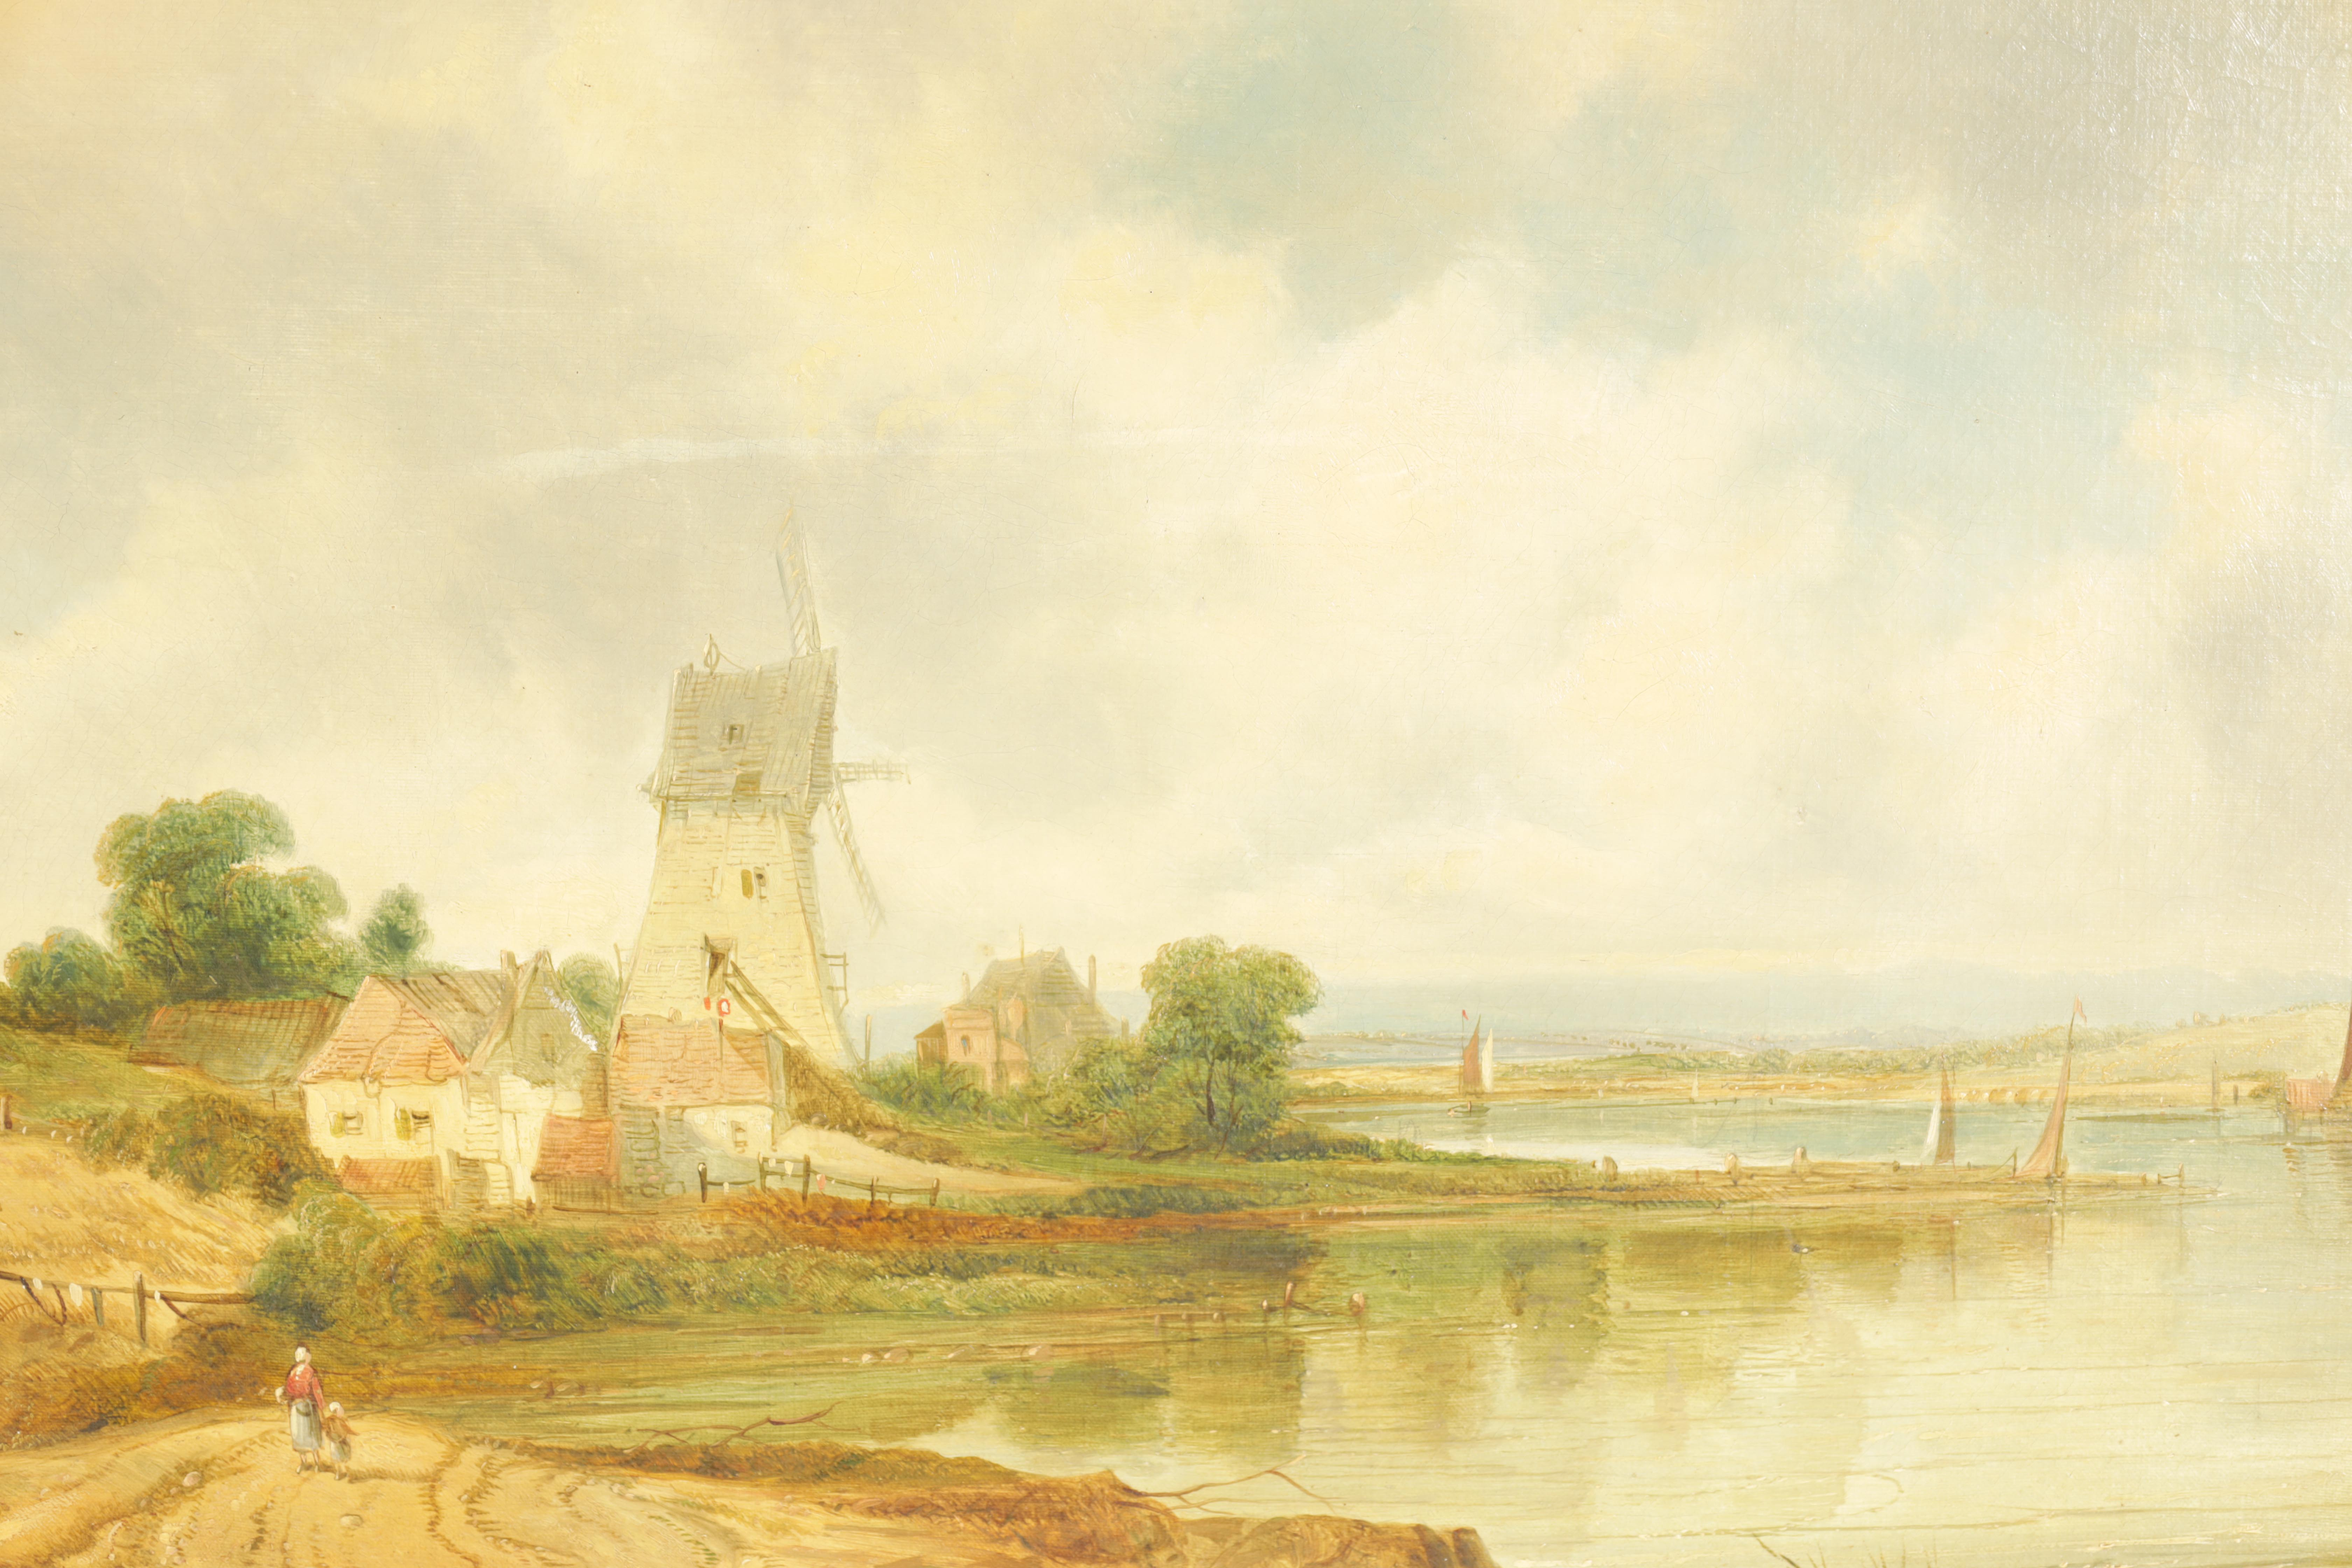 ALFRED H. VICKERS A PAIR OF MID 19TH CENTURY OILS ON CANVAS depicting river landscapes - signed - Image 3 of 8